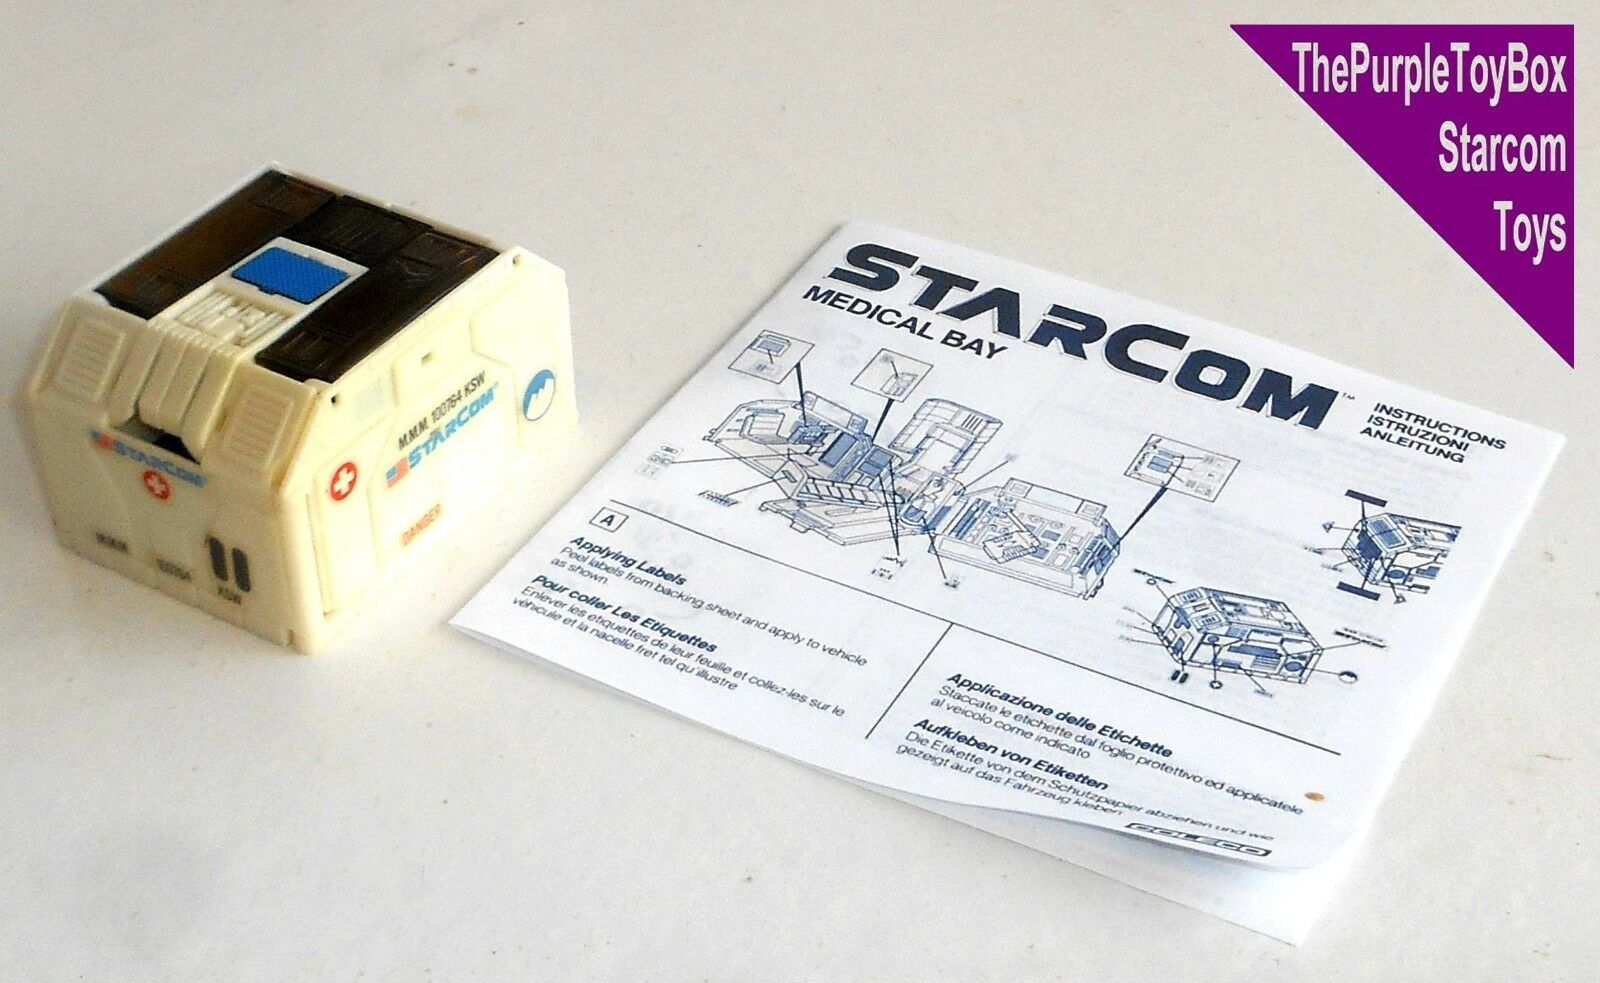 (R002) Vintage 1980's Starcom Toys  MEDICAL BAY  Star Command - WORKING